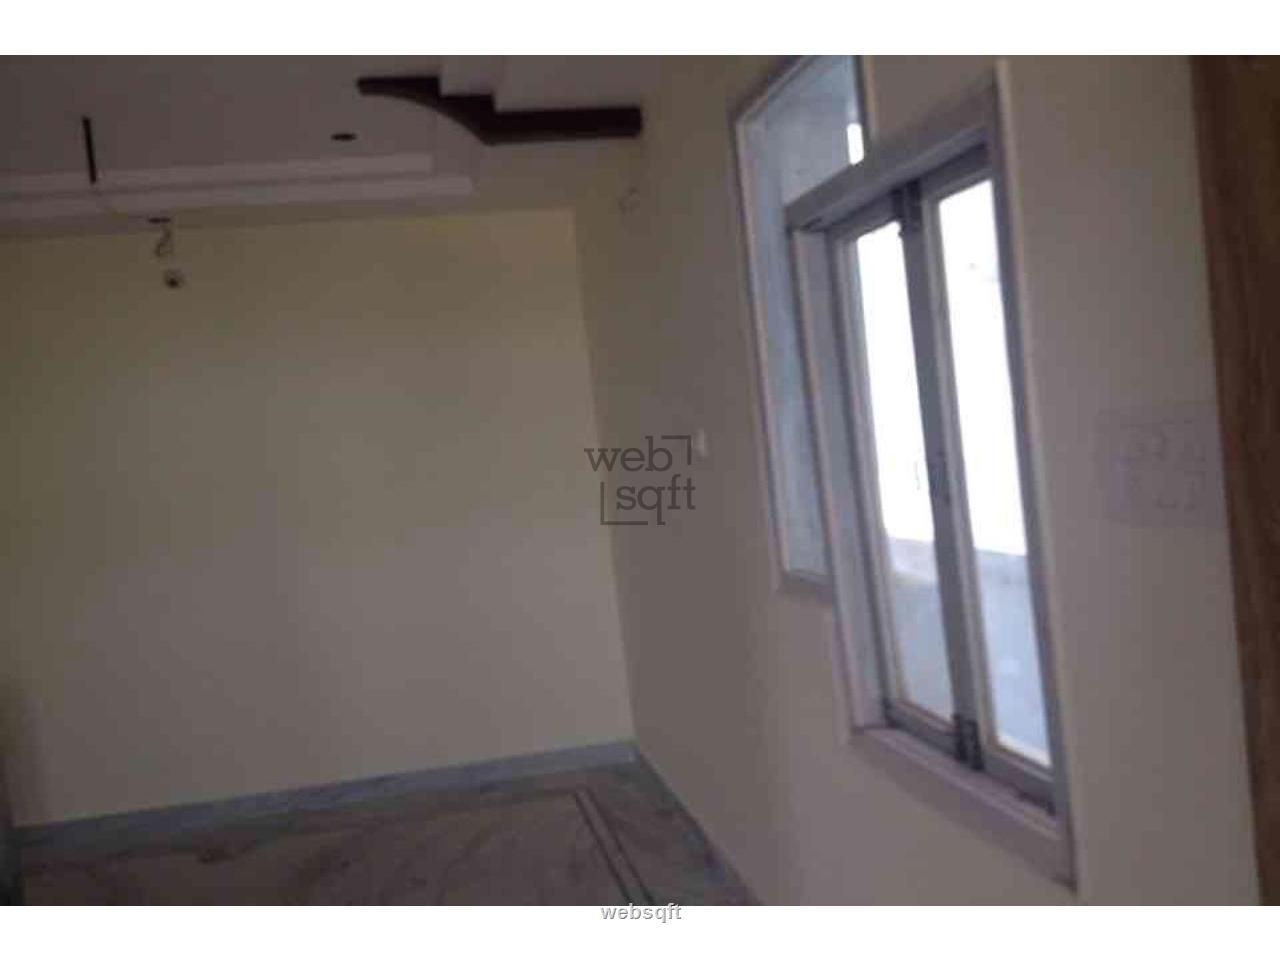 Websqft - Residential Duplex House - Property for Sale - in 2200Sq-ft/ECIL at Rs 5601200